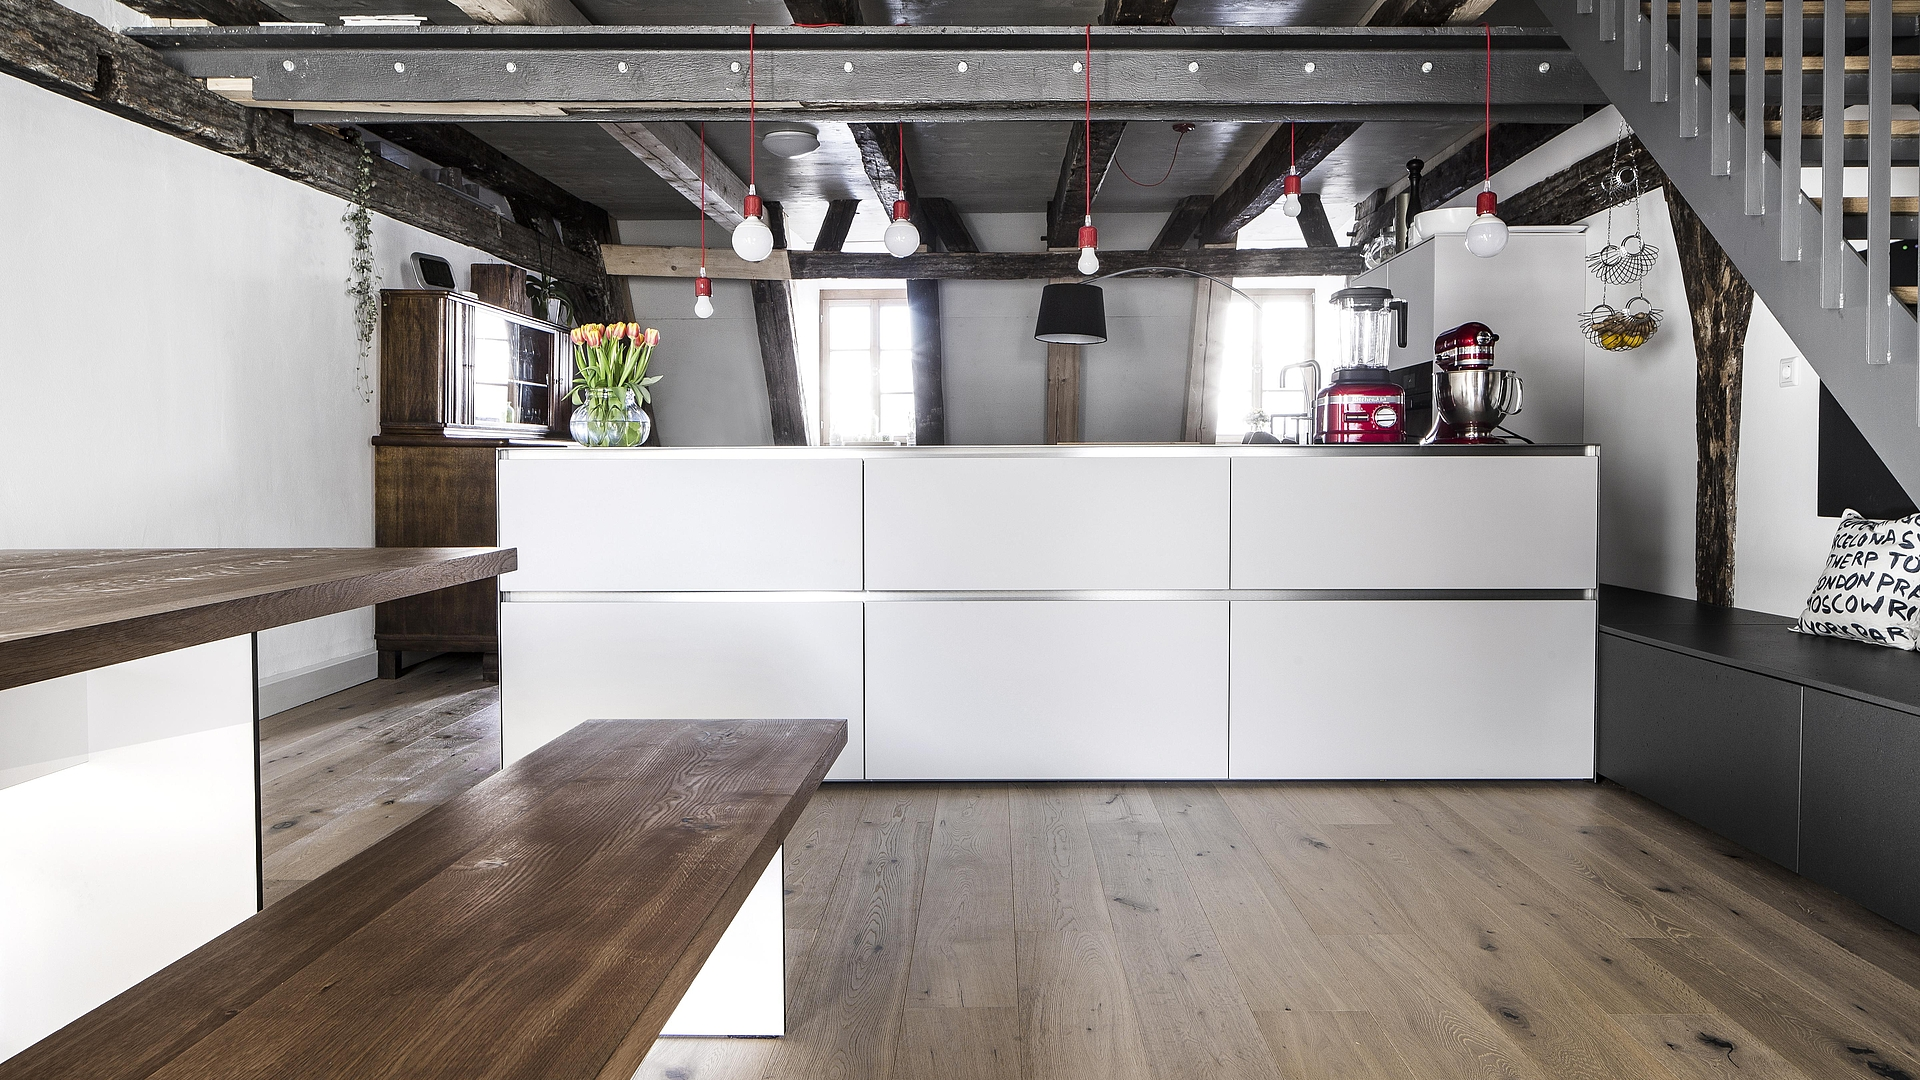 MODERN KITCHEN IN A HISTORICAL TOWN HOUSE